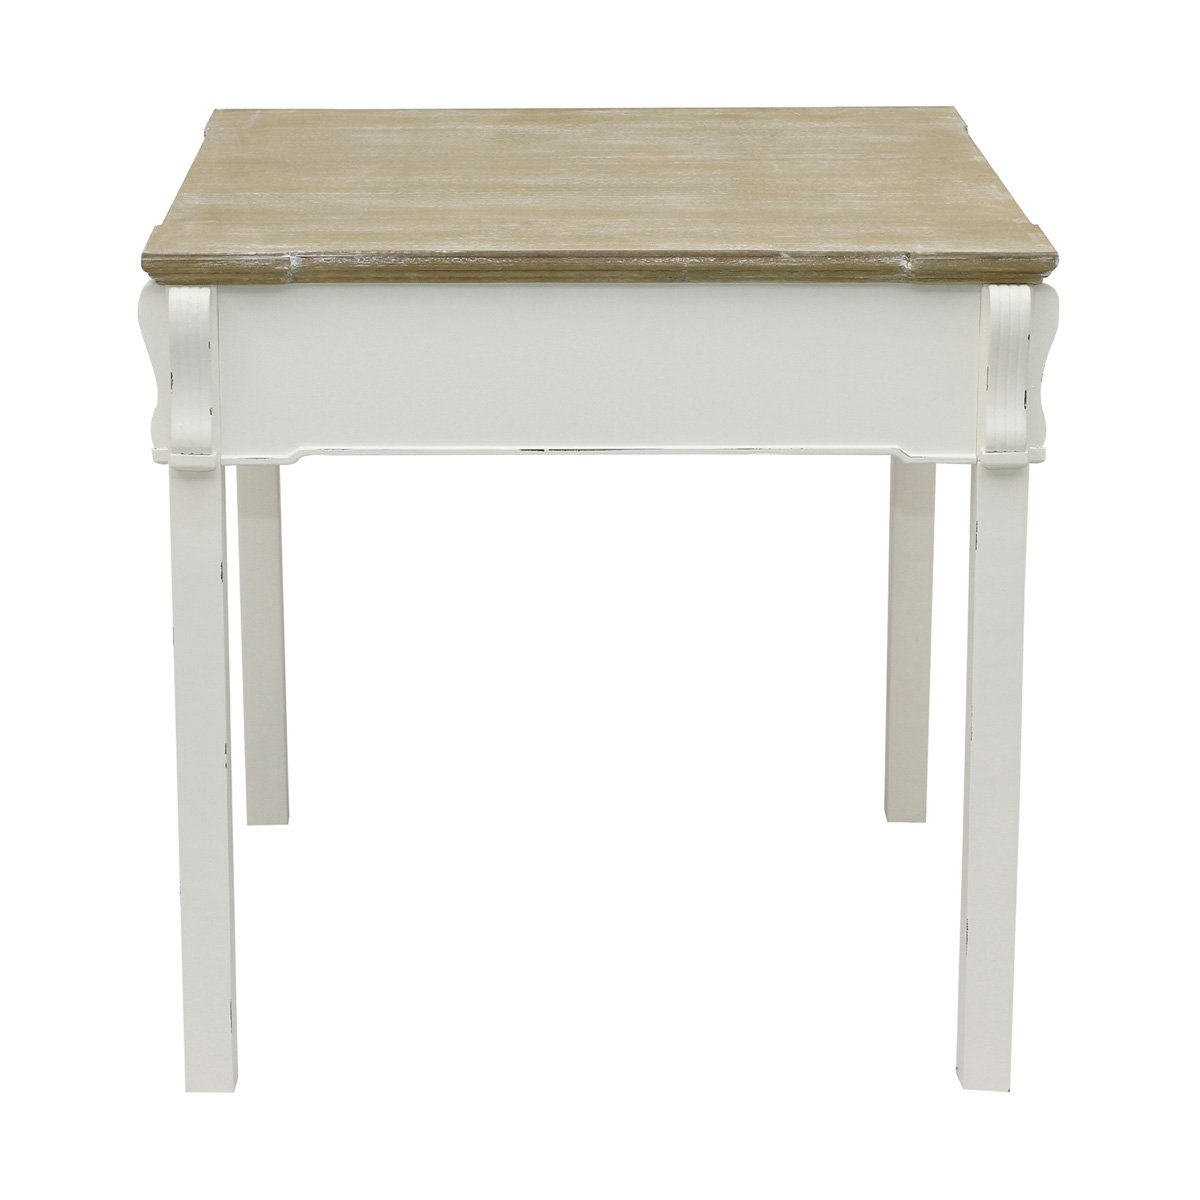 Charles Bentley Home Shabby Chic Dining Table Vintage French Style Dining Table - White Distressed Finish